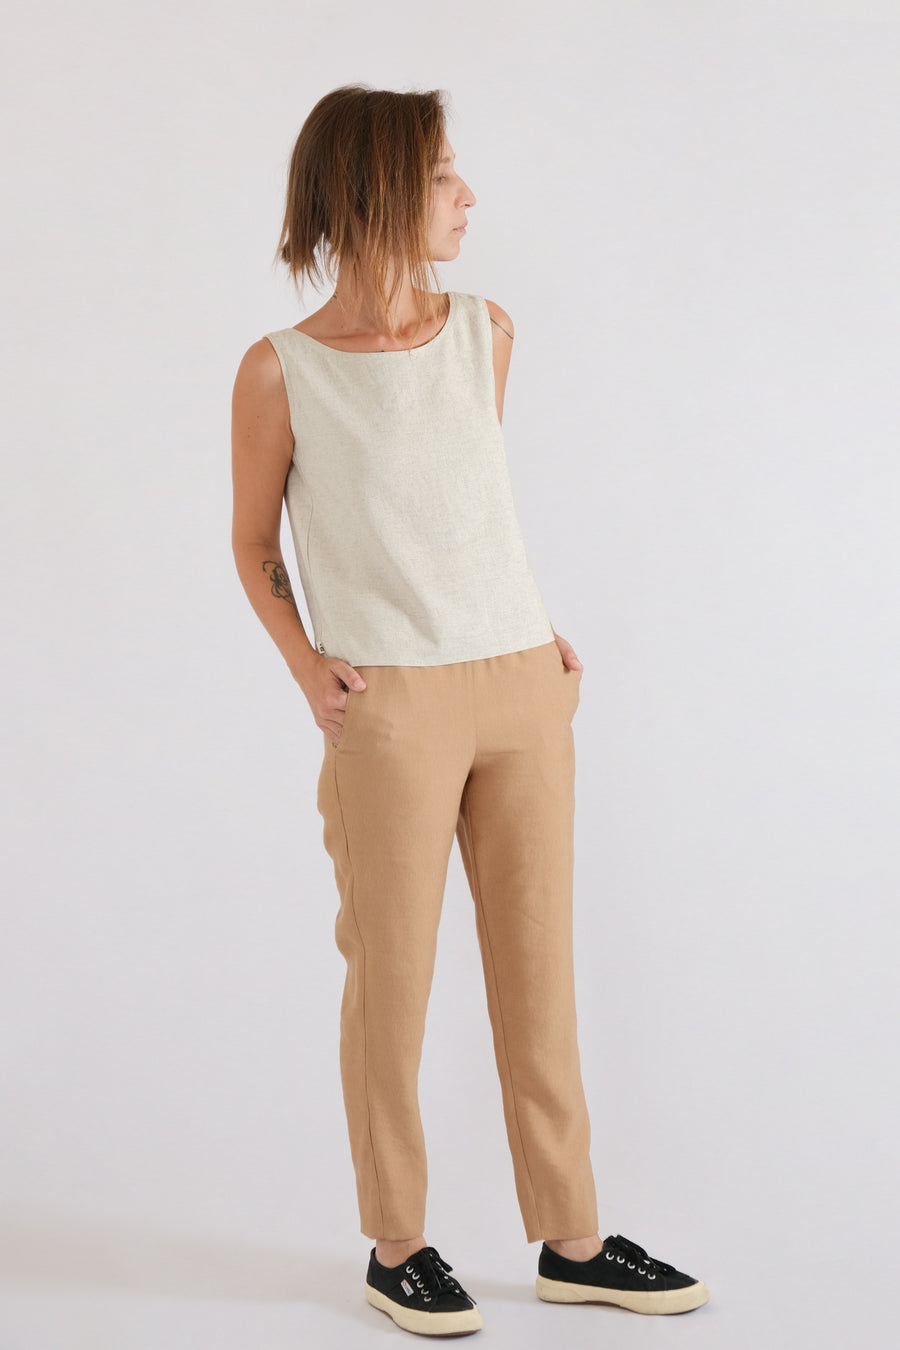 LUN PANTS in lyocell linen